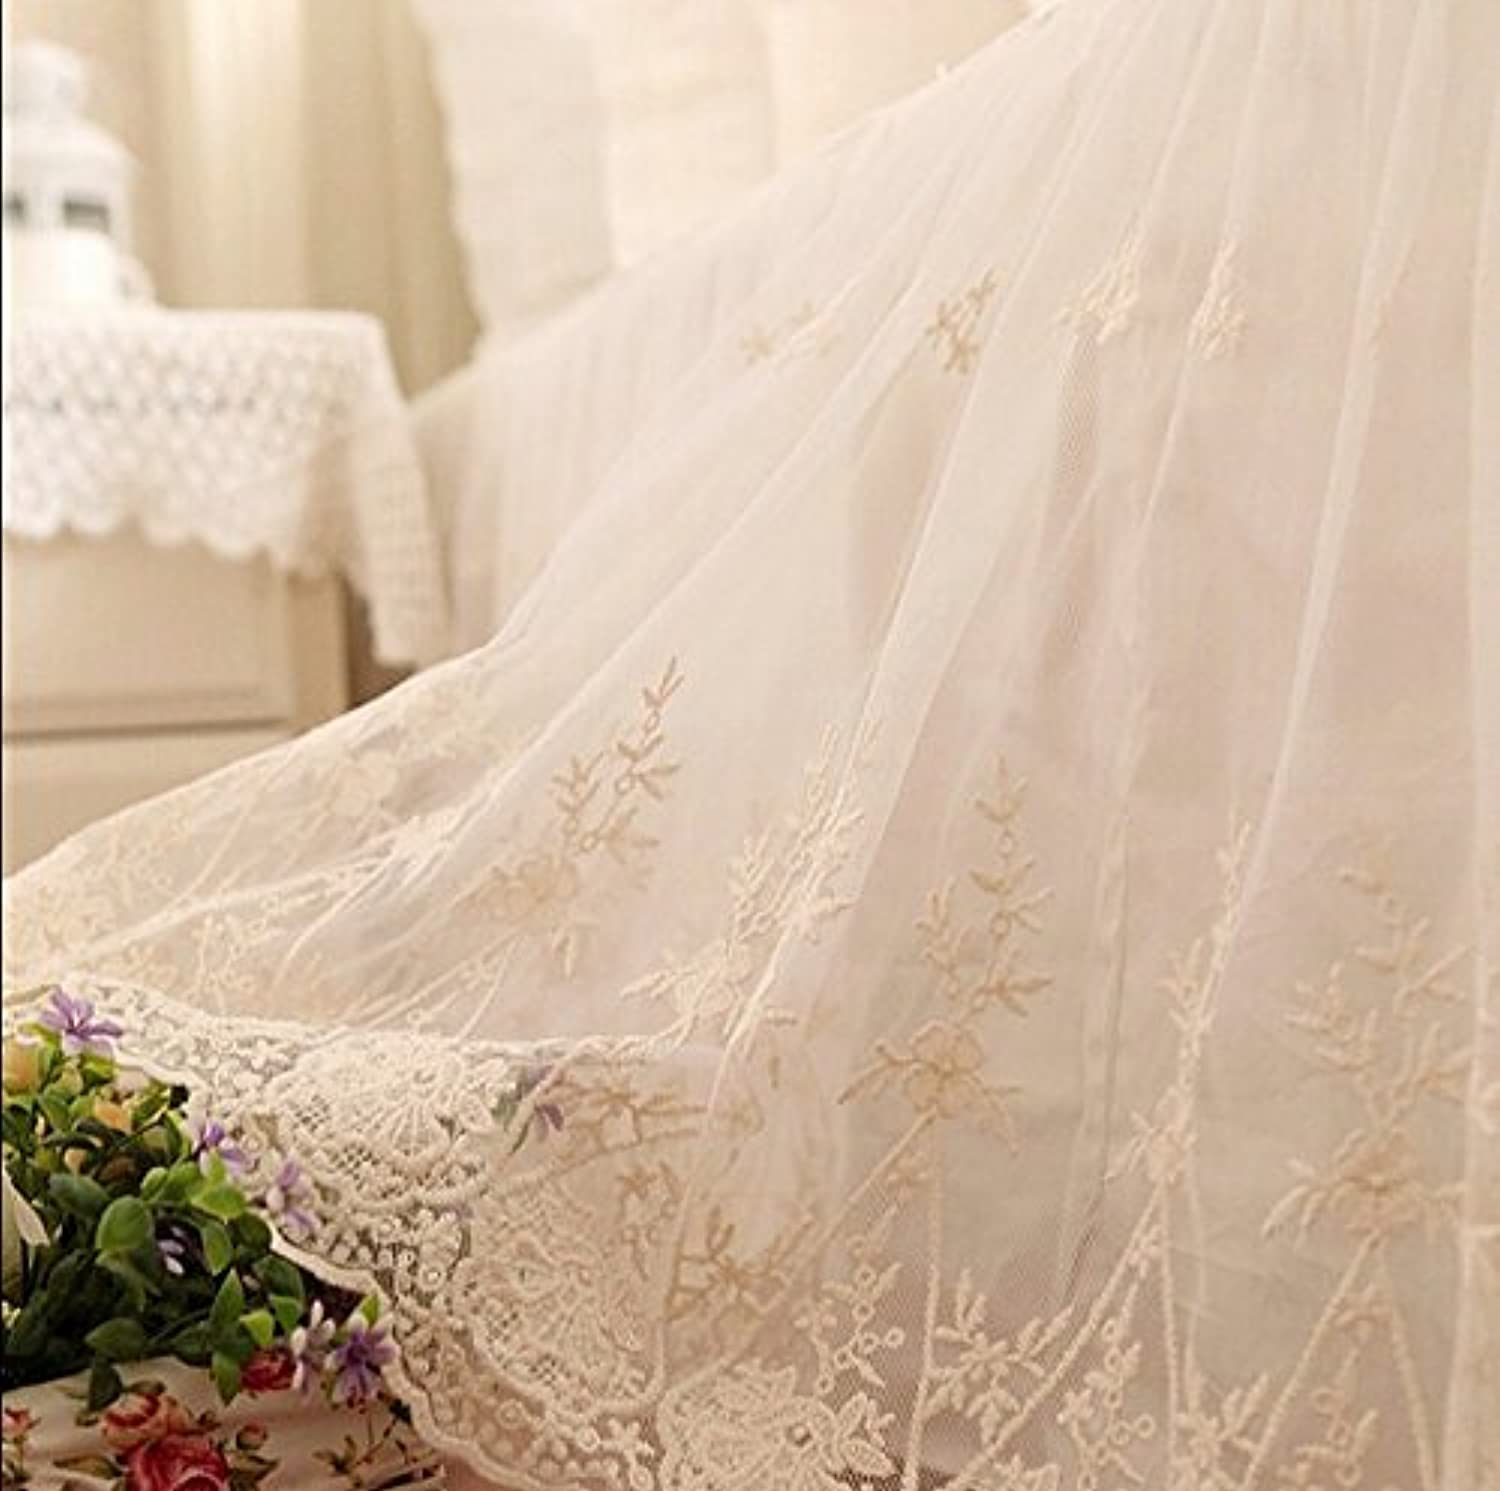 Brandream Twin Size Lace Bed Skirt Off White Girls Bed Covers Farmhouse 100% Cotton Dust Ruffle Bed Skirts